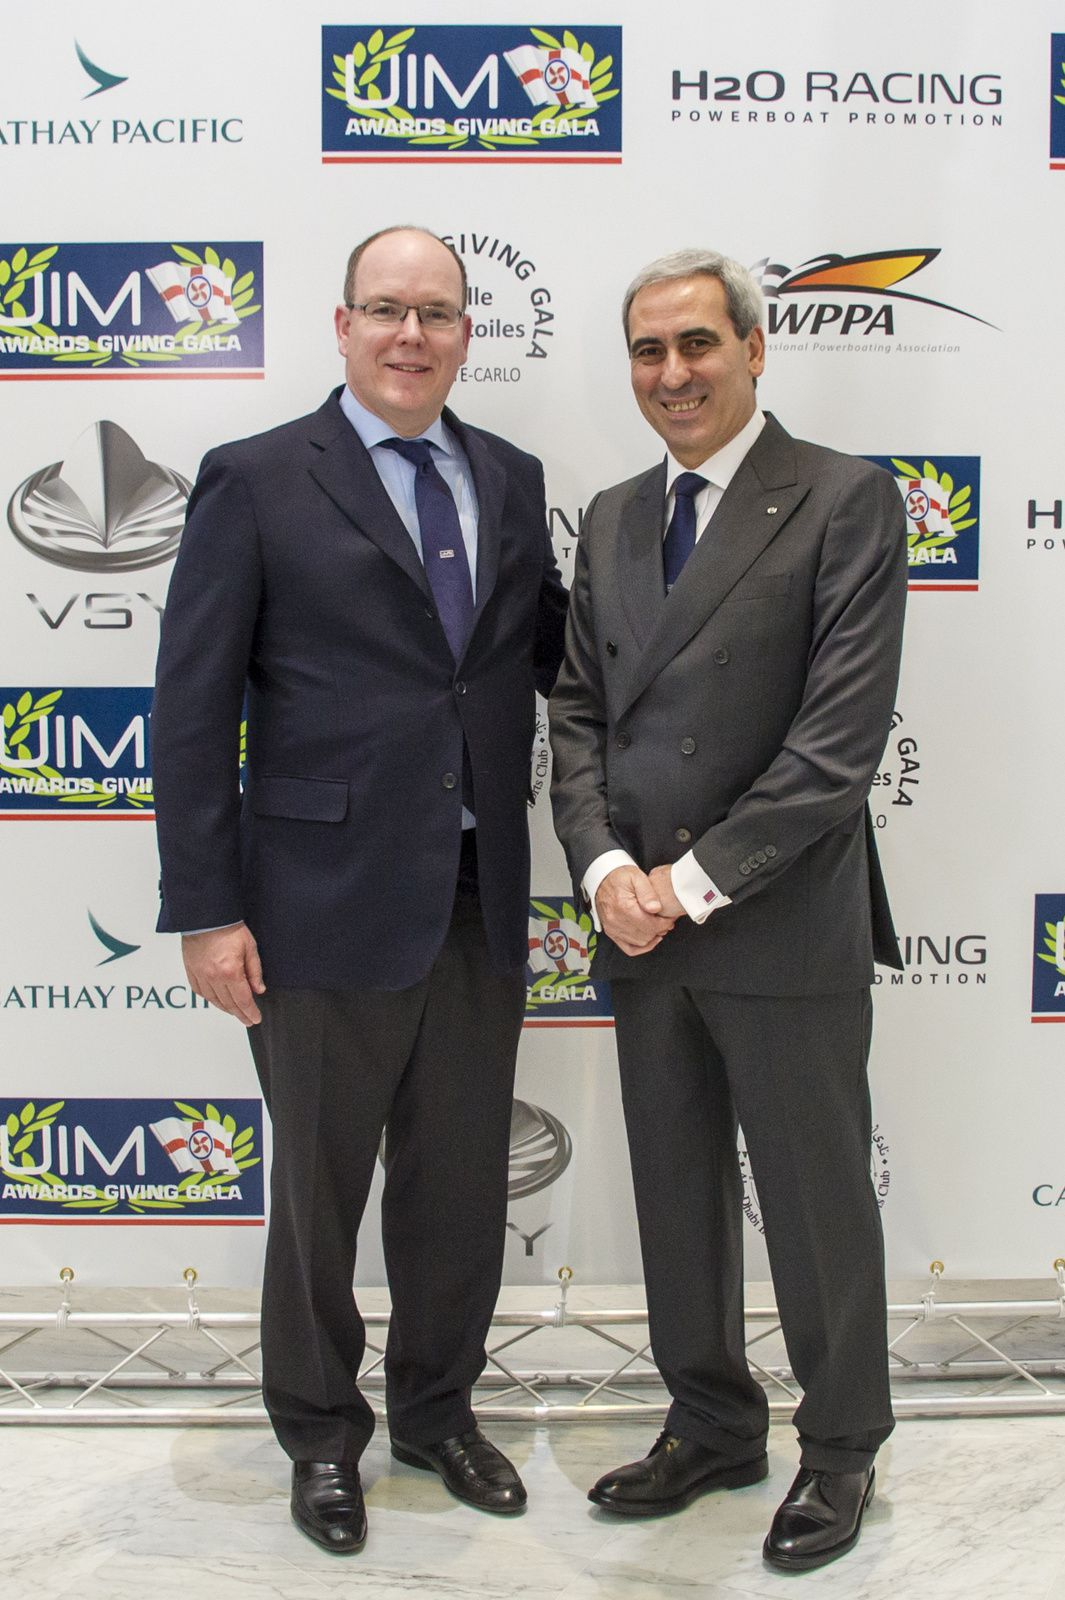 POWERBOATING WORLD CHAMPIONS CELEBRATED AT STAR-STUDDED UIM AWARDS GIVING GALA